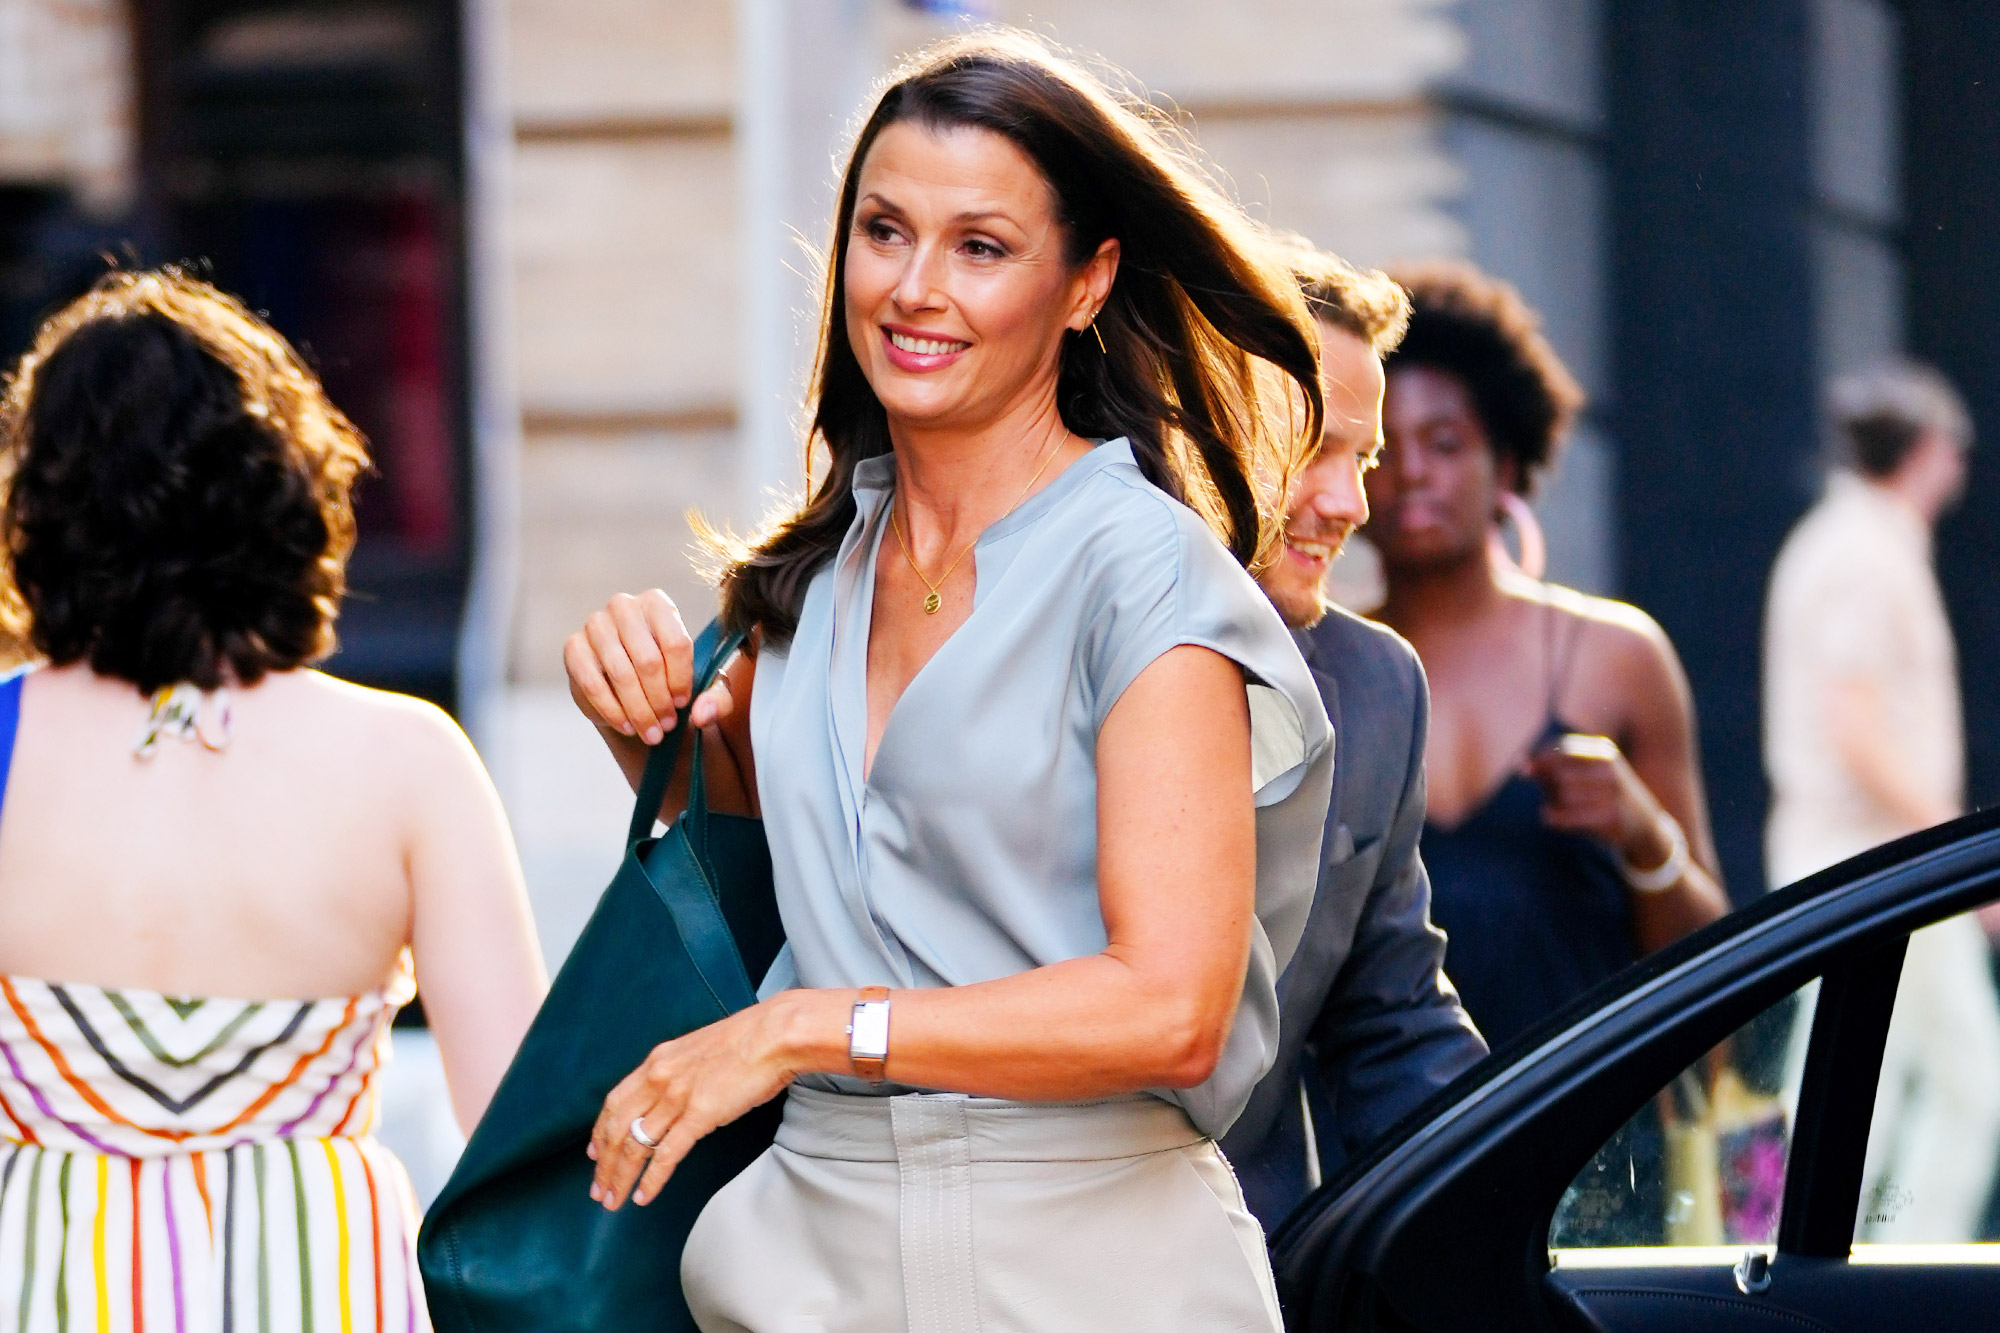 Bridget Moynahan on location for 'And Just Like That...' the reboot to 'Sex and the City' on July 19, 2021 in New York City